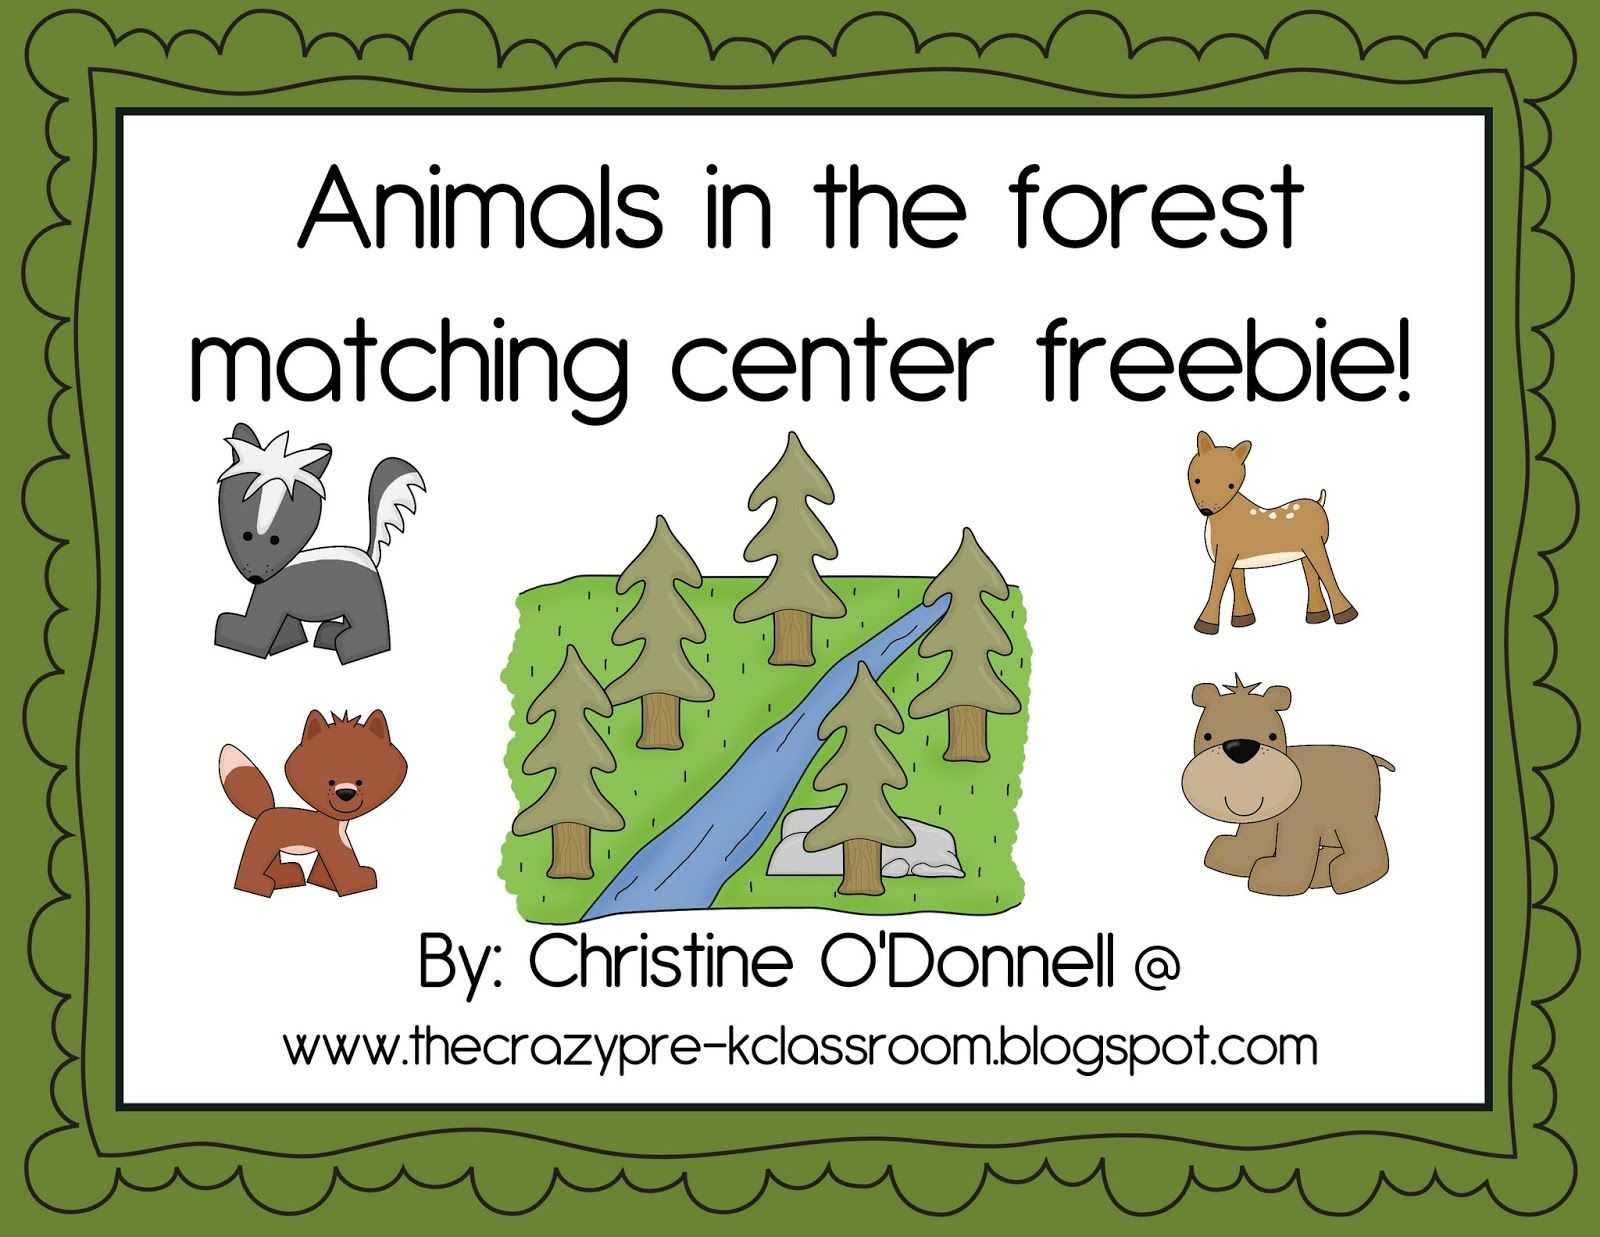 Animal Habitats Printables Animal And Habitat Teaching Ideas For Pre K And A Fre Free Science Lesson Science Experiments Kids Elementary Science Art Projects [ 1237 x 1600 Pixel ]